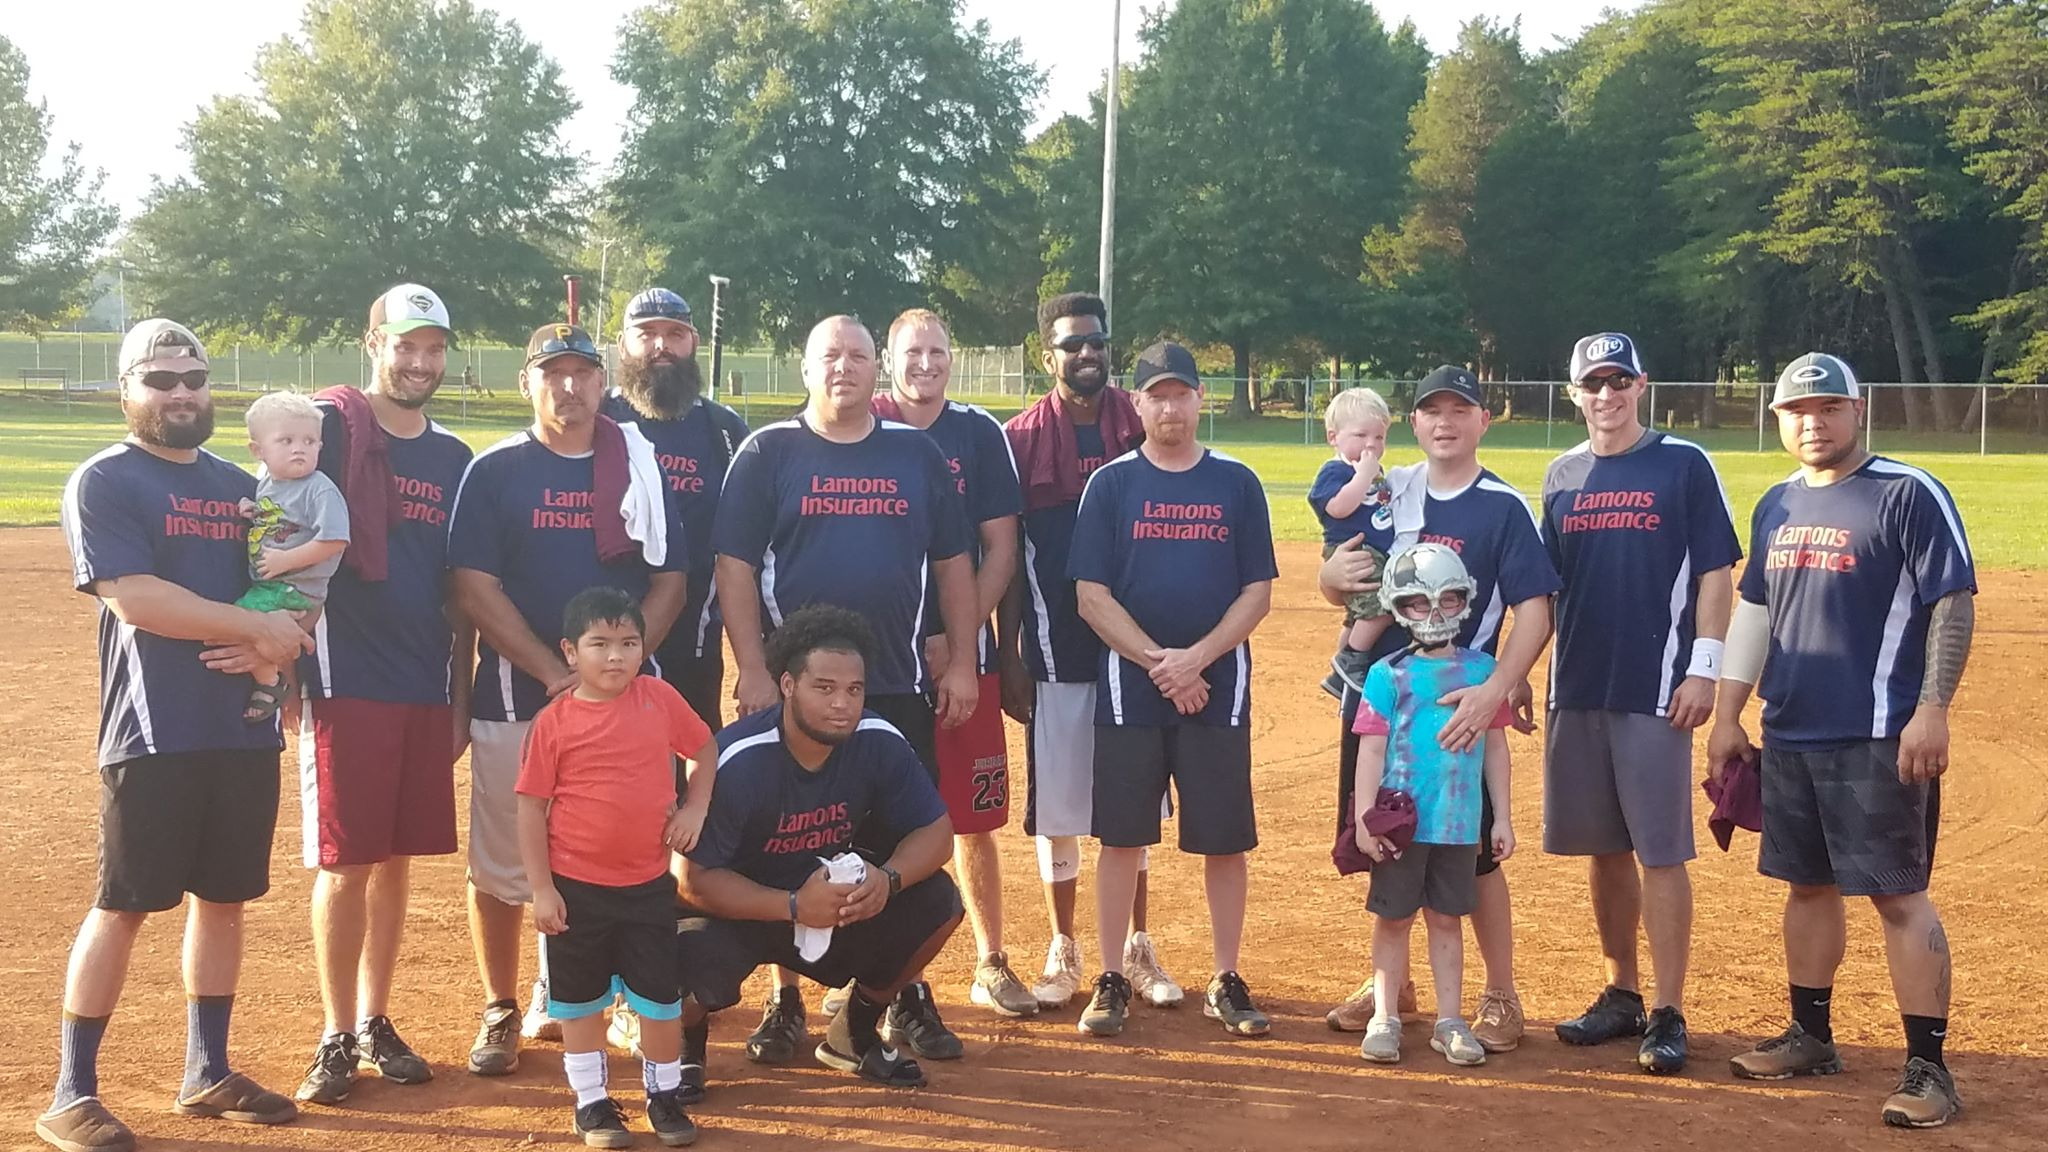 nj Adult tournament in softball